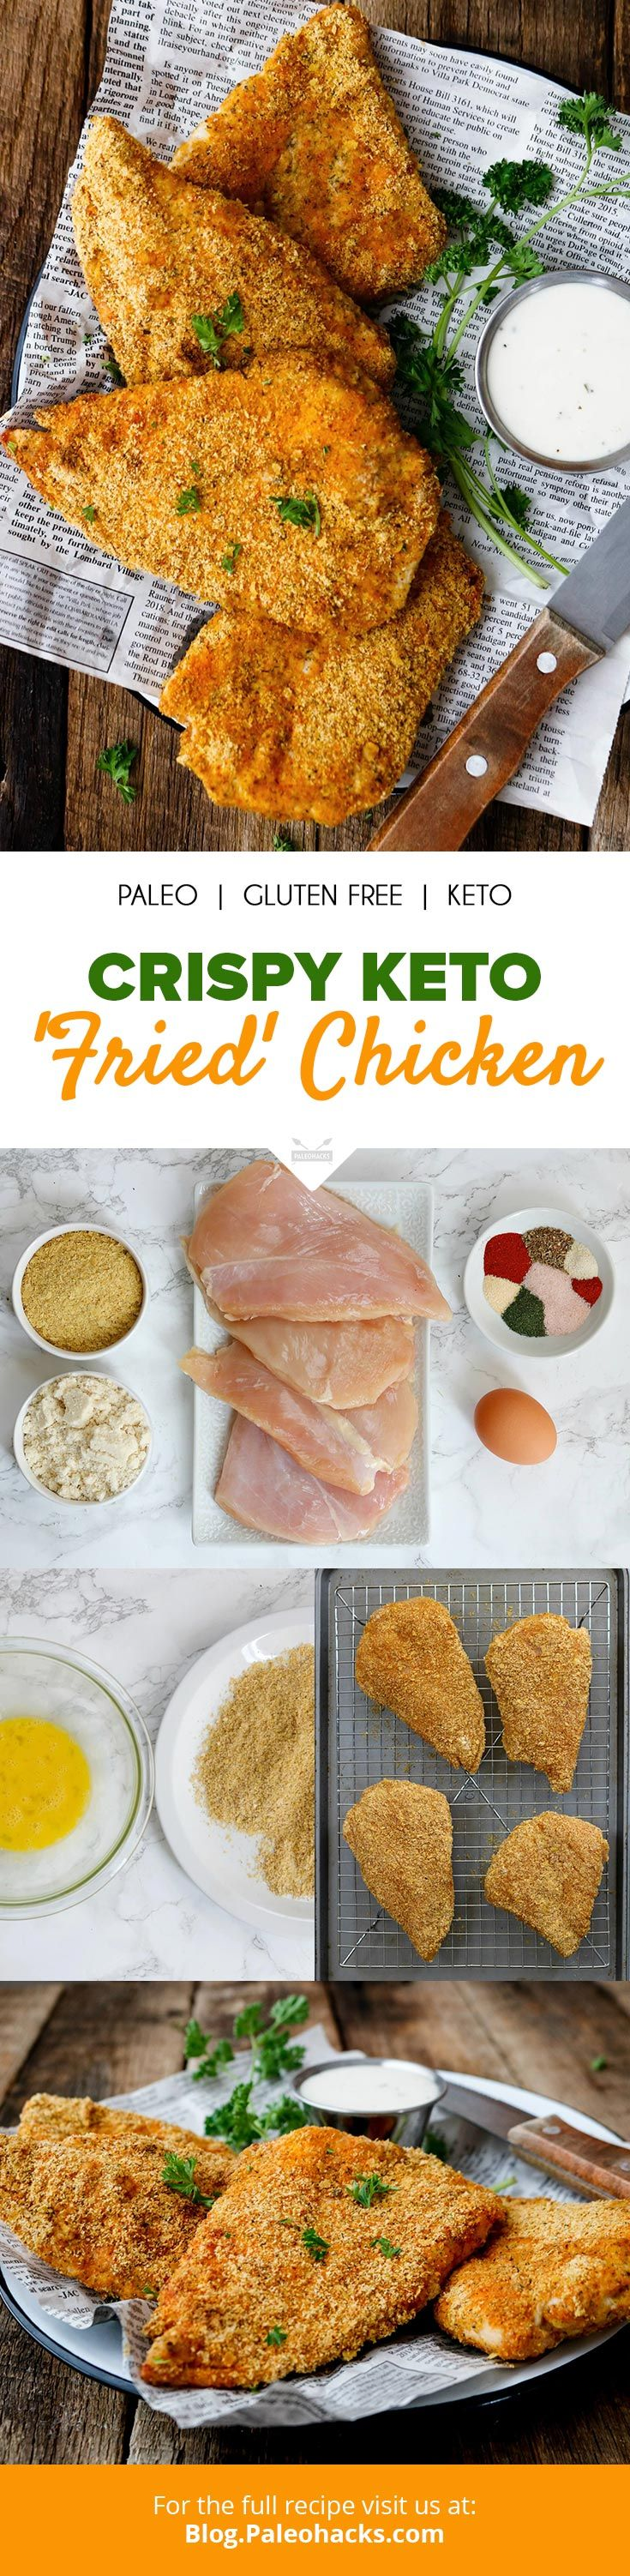 """Skip the carbs, and bite into this crispy, keto-approved """"fried"""" chicken! Get the full recipe here: http://paleo.co/ketofriedchicken"""